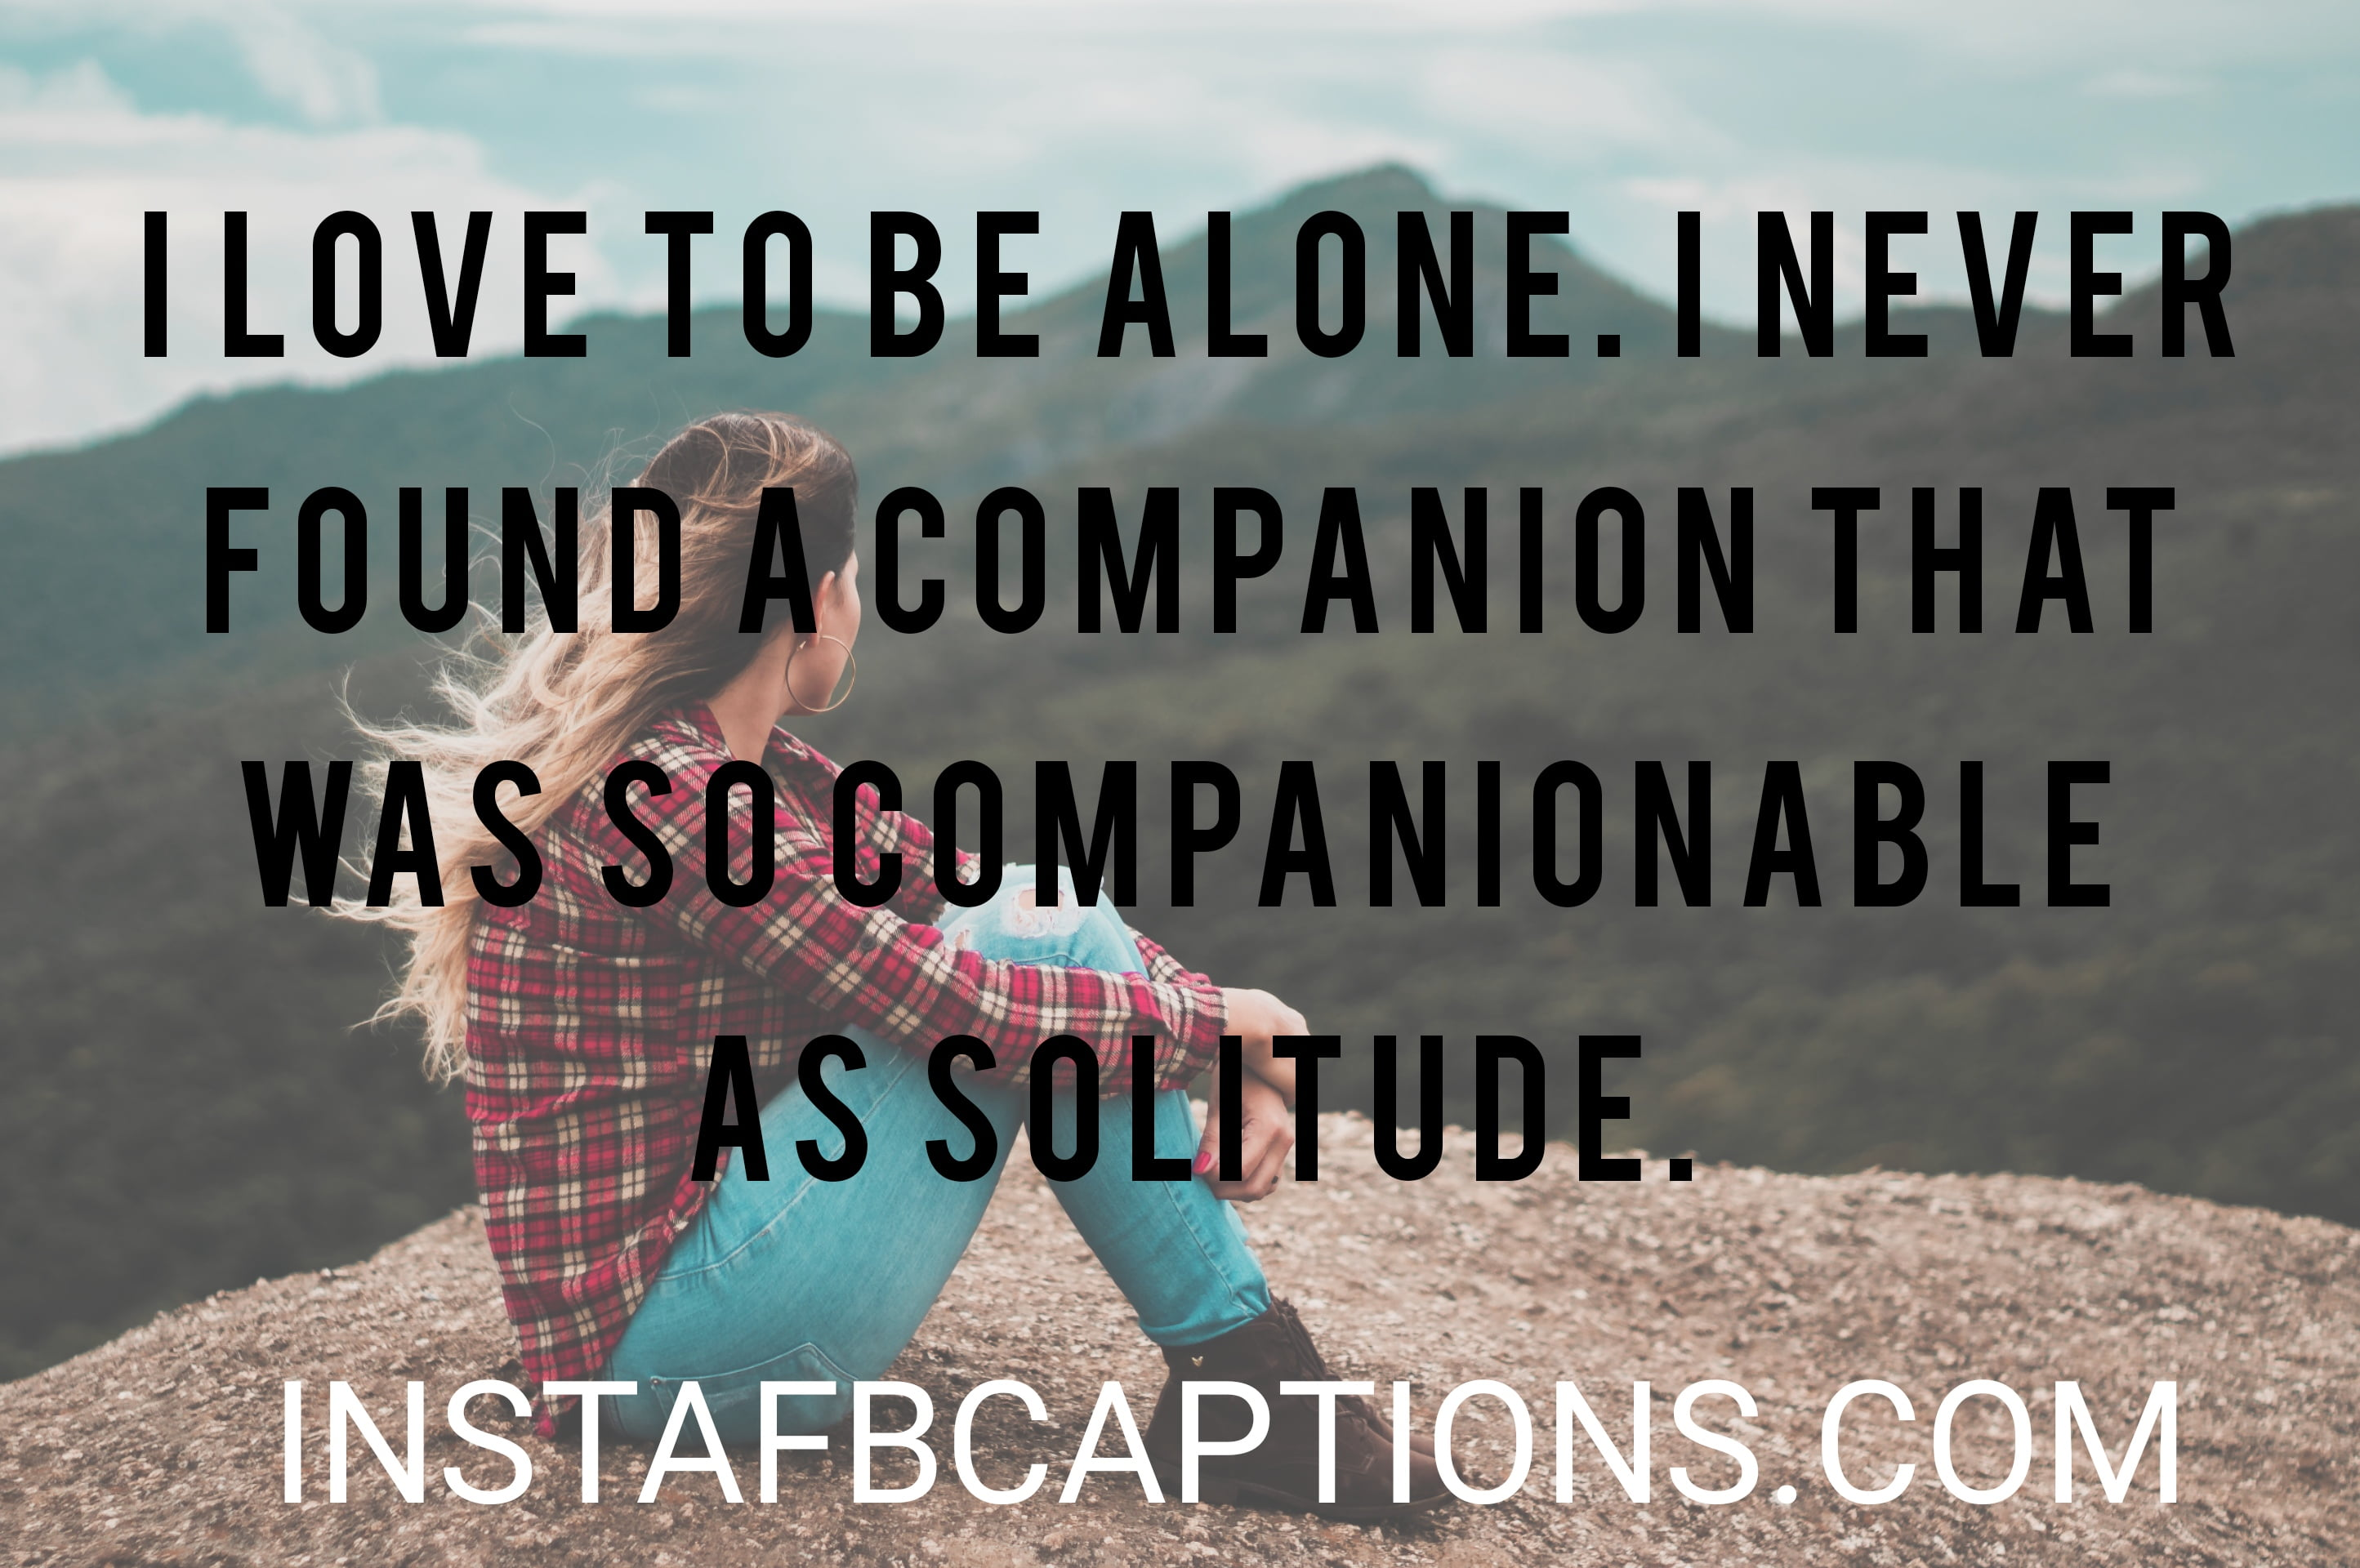 Captions For Sitting Alone  - Captions for Sitting Alone - 120+ SITTING POSE Instagram captions 2021